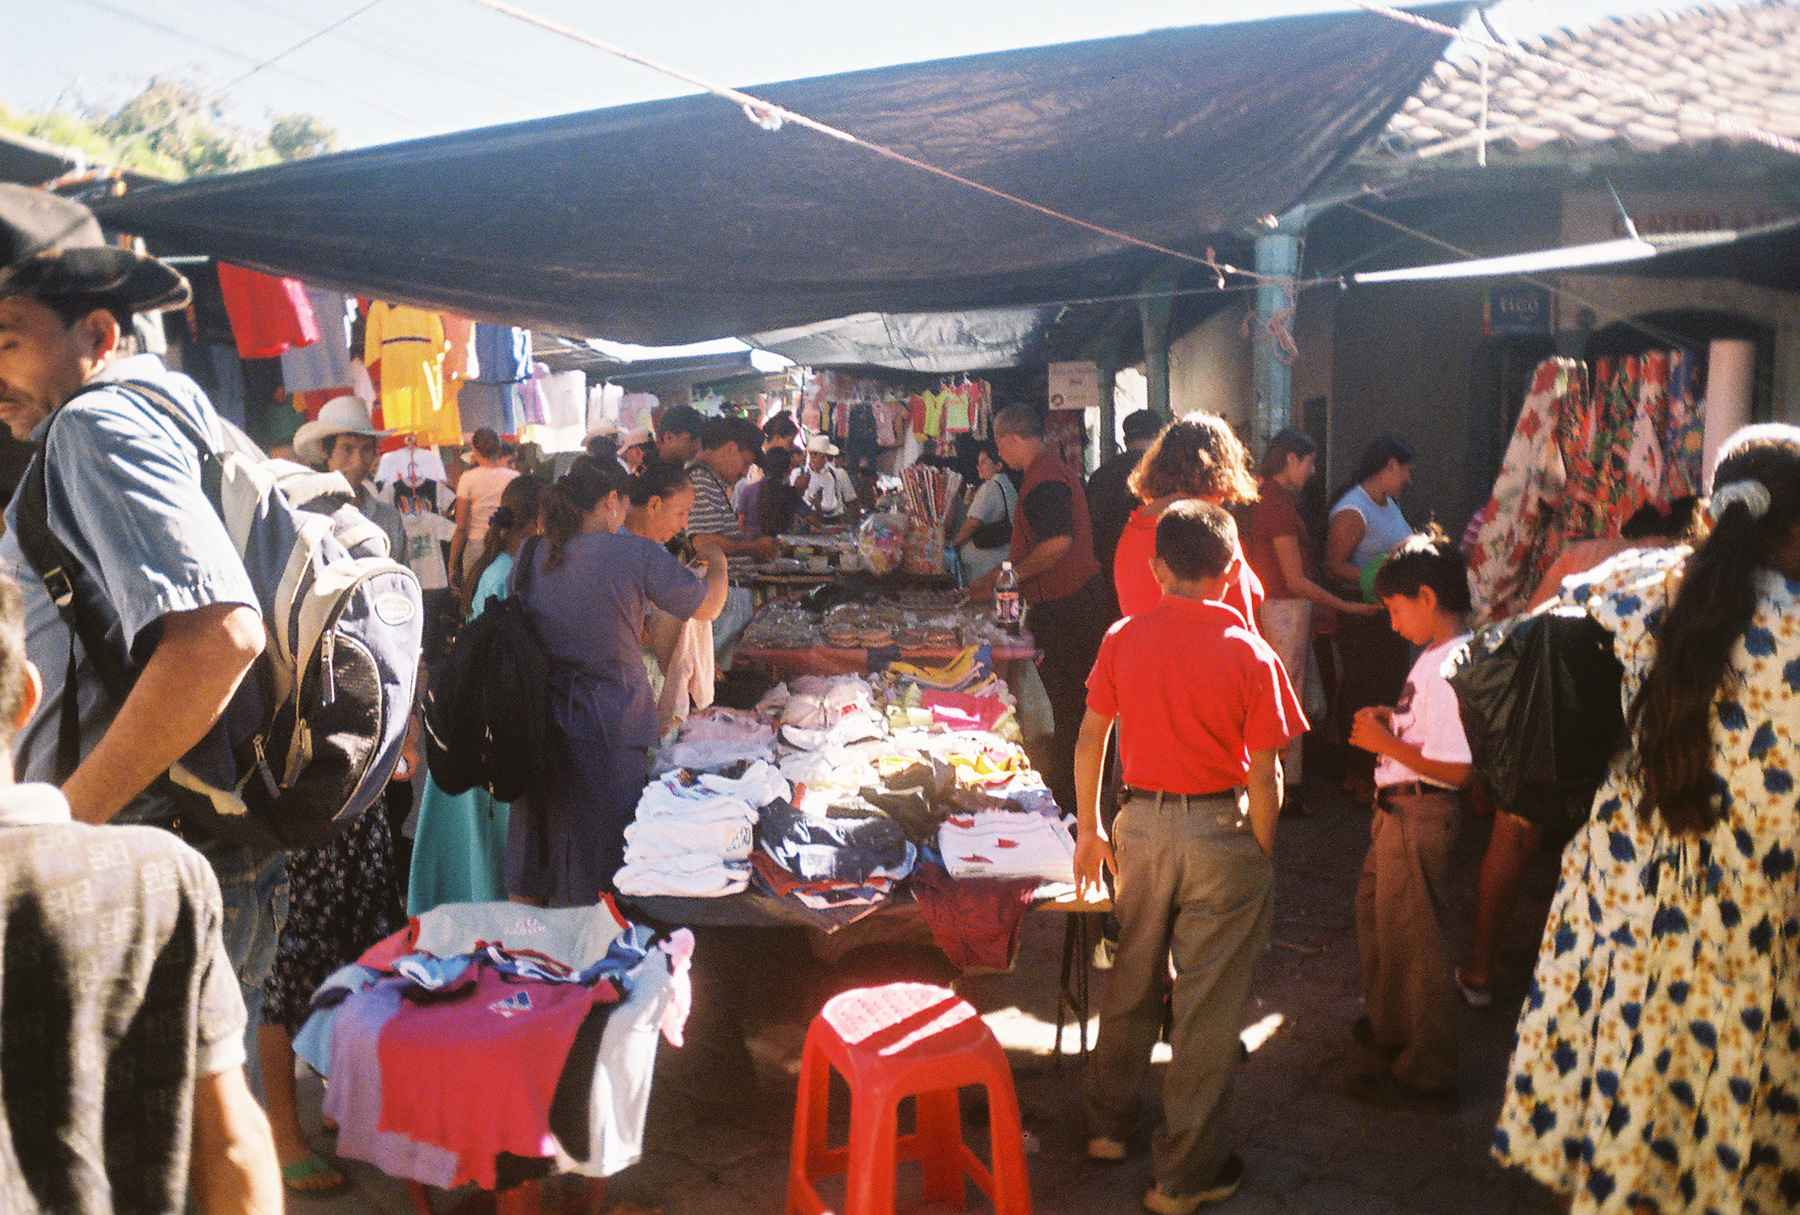 A Market in El Salvador